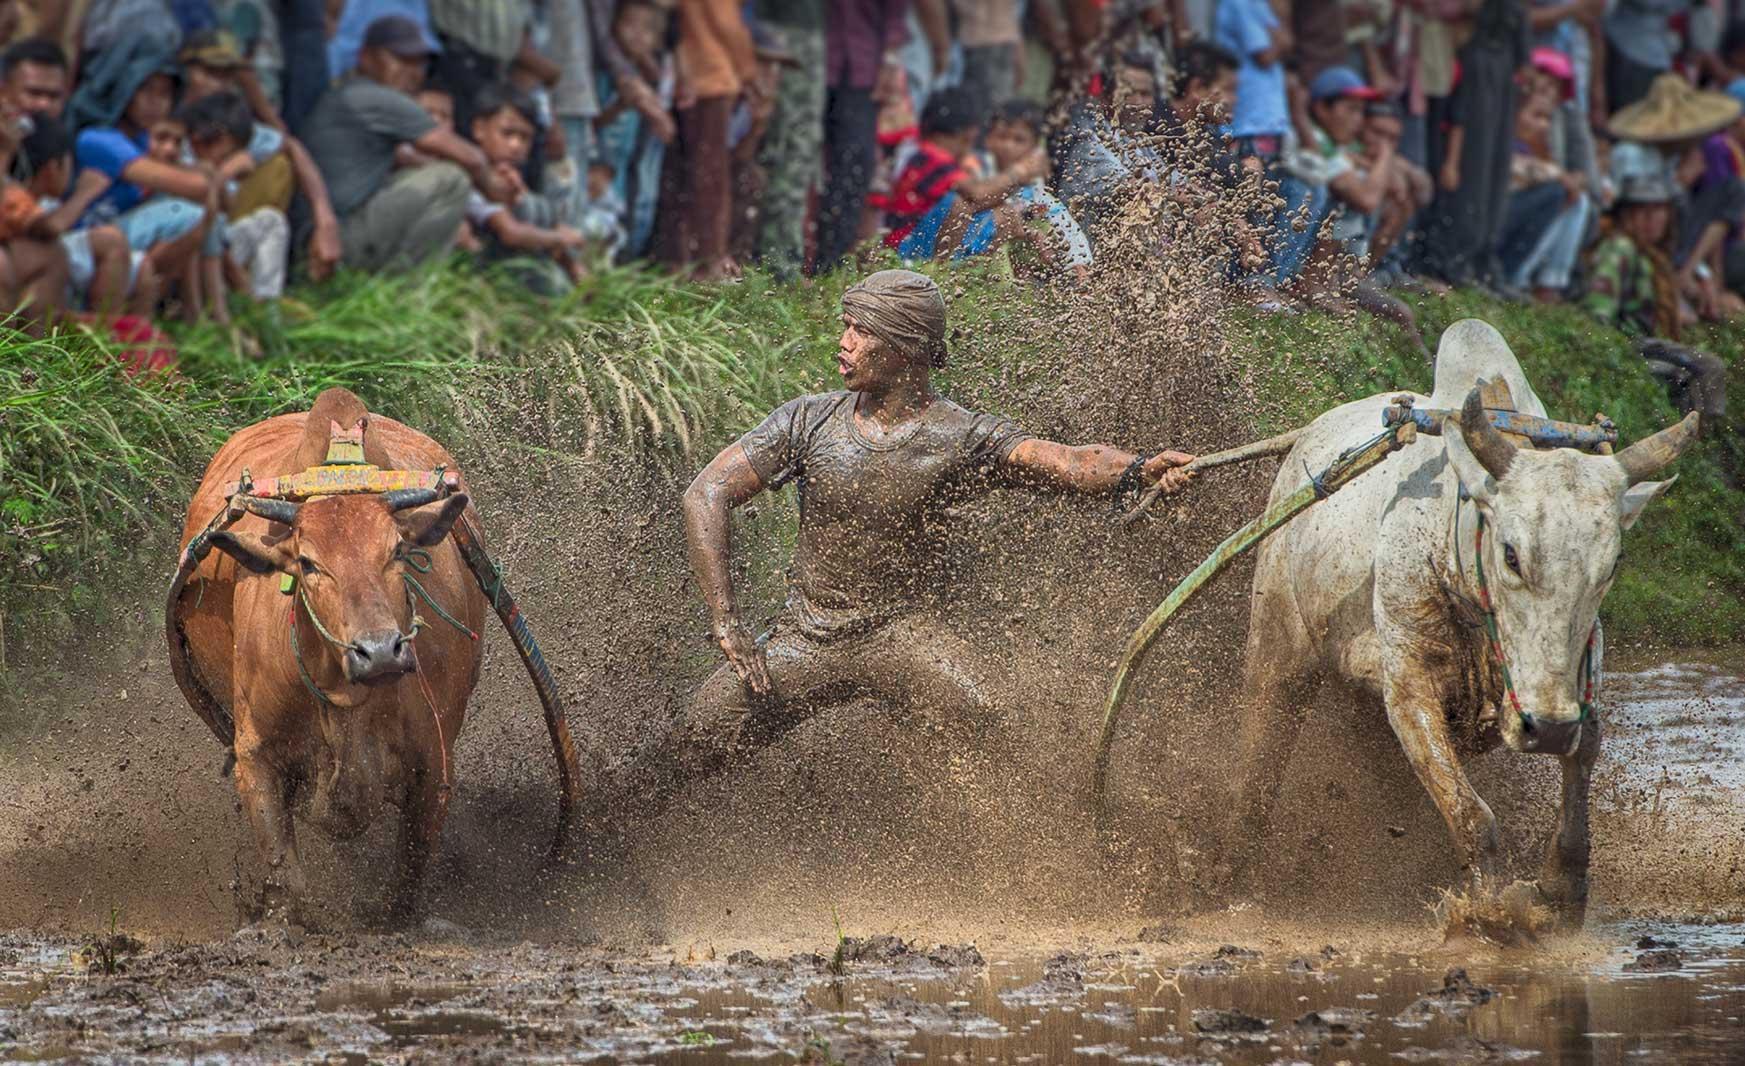 Bull Racer 4, West Sumatra, Indonesia